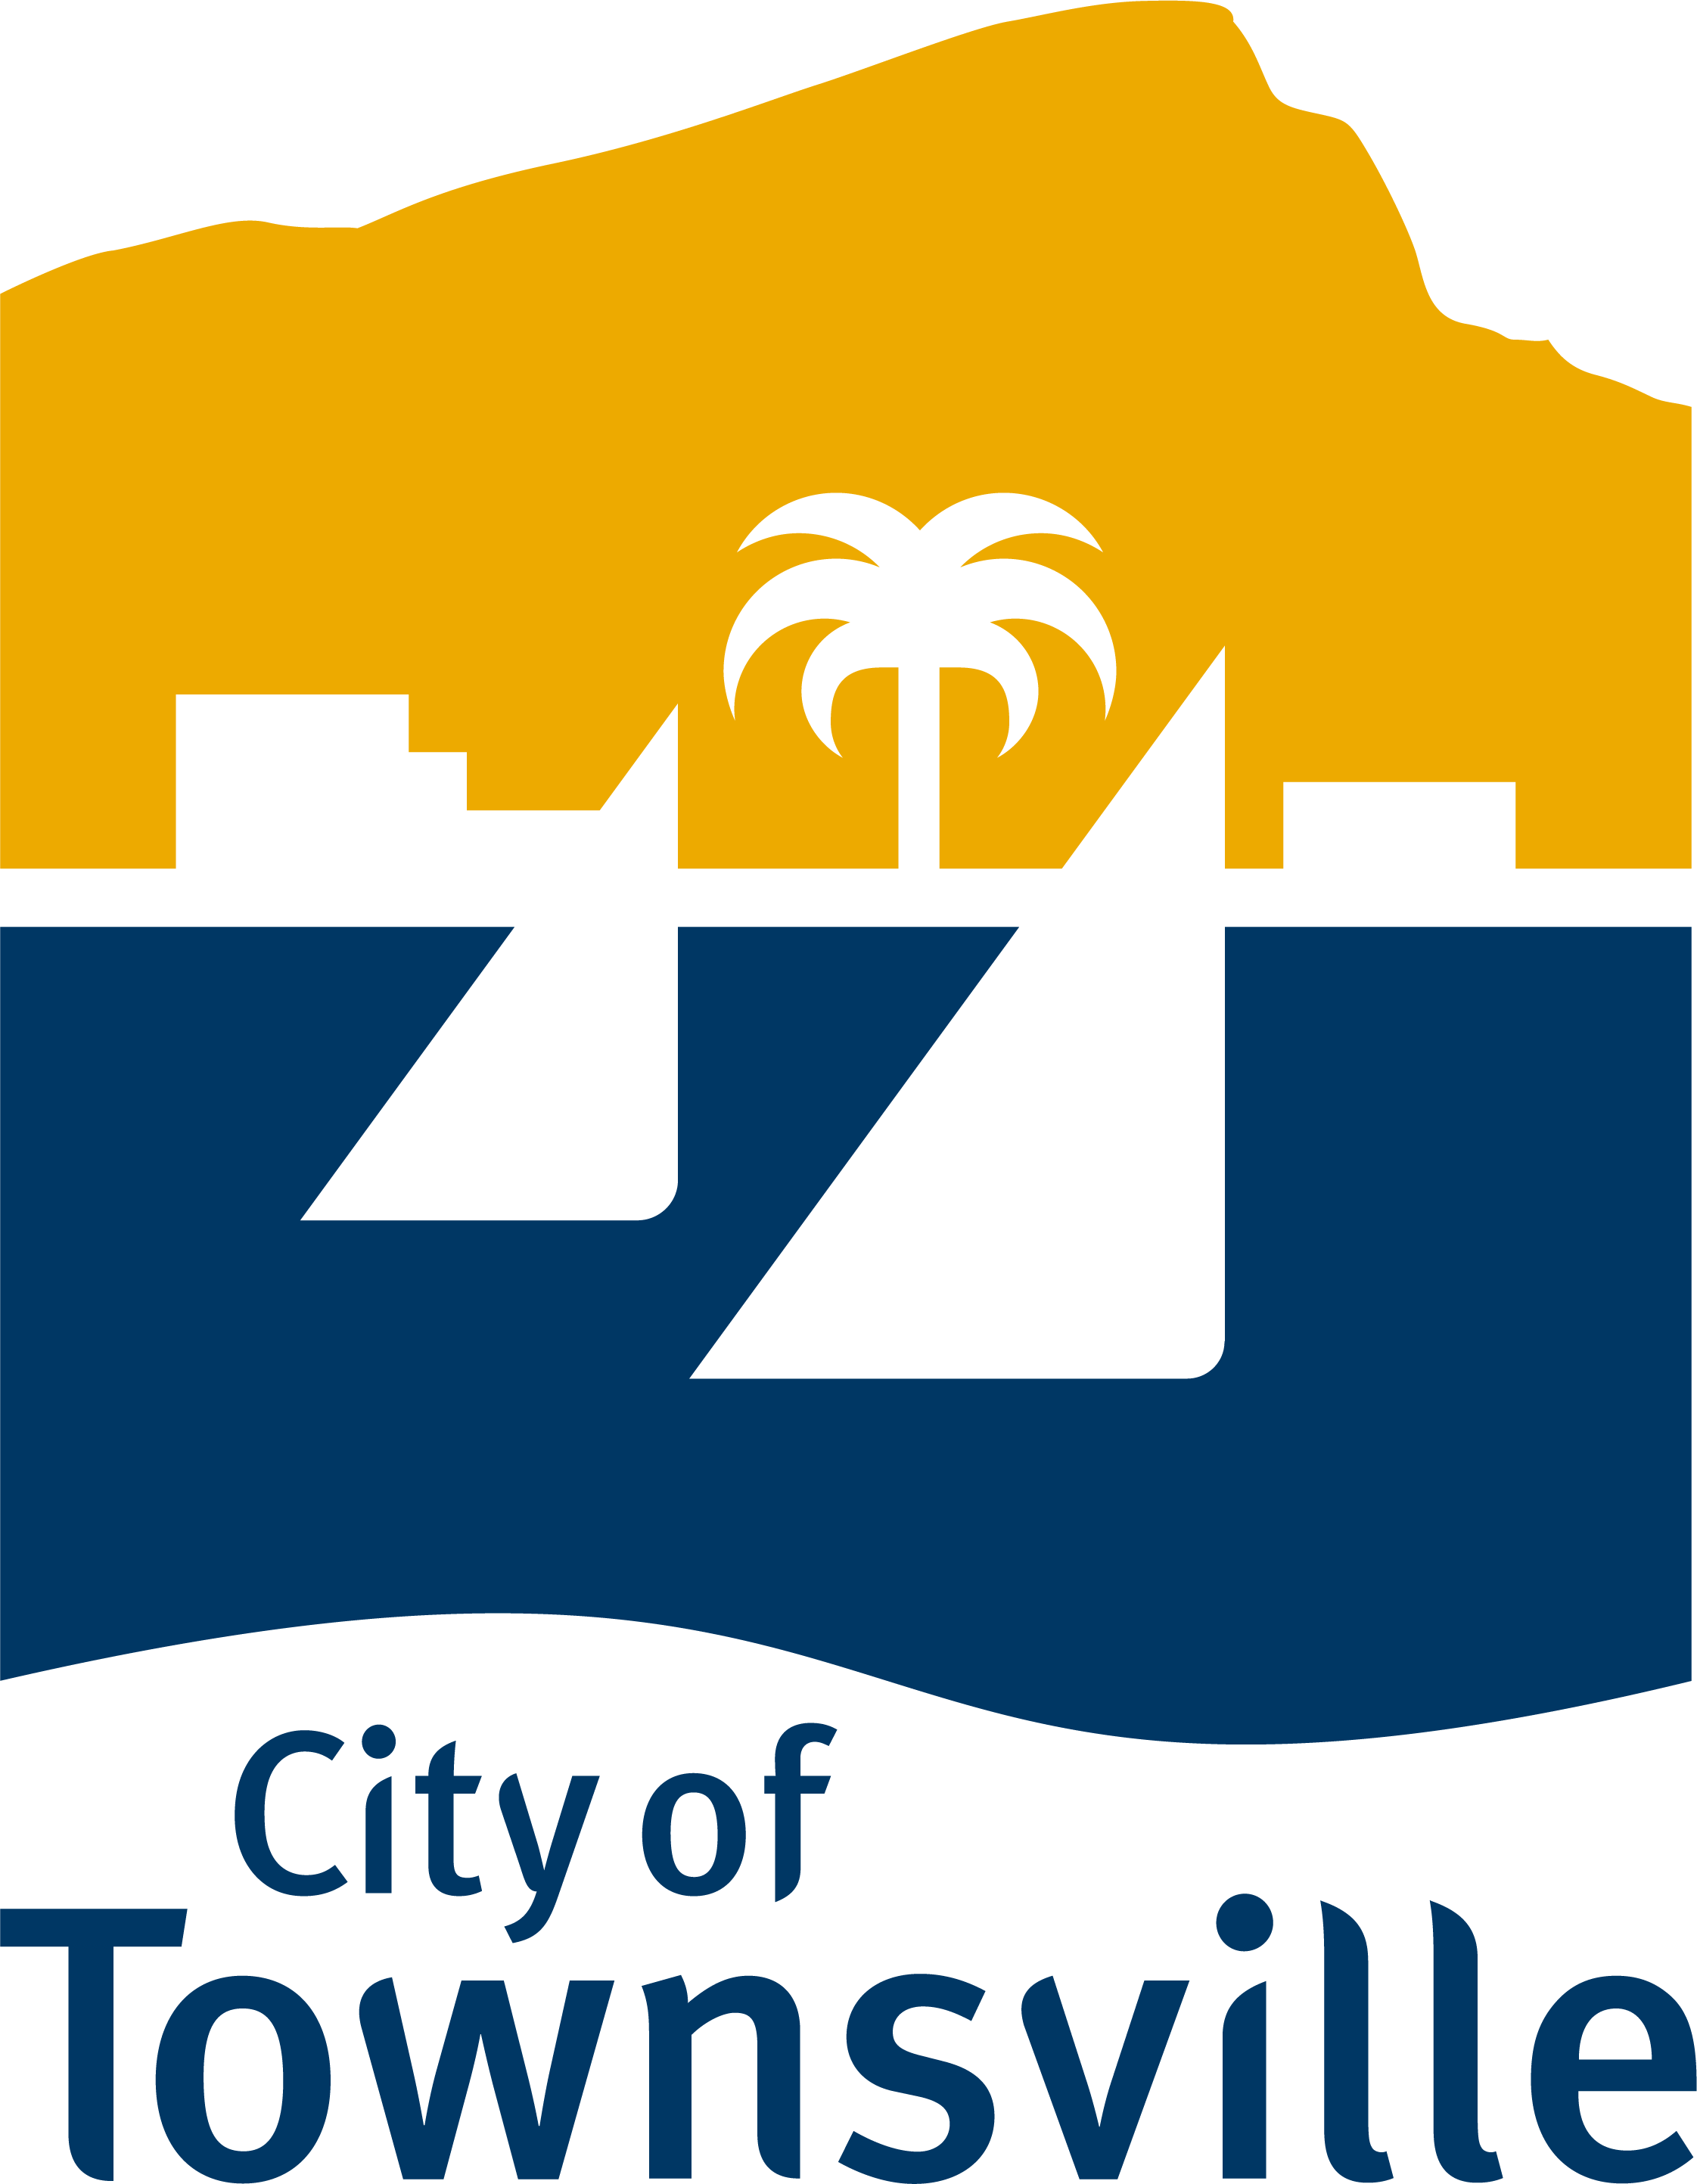 townsville-city-council